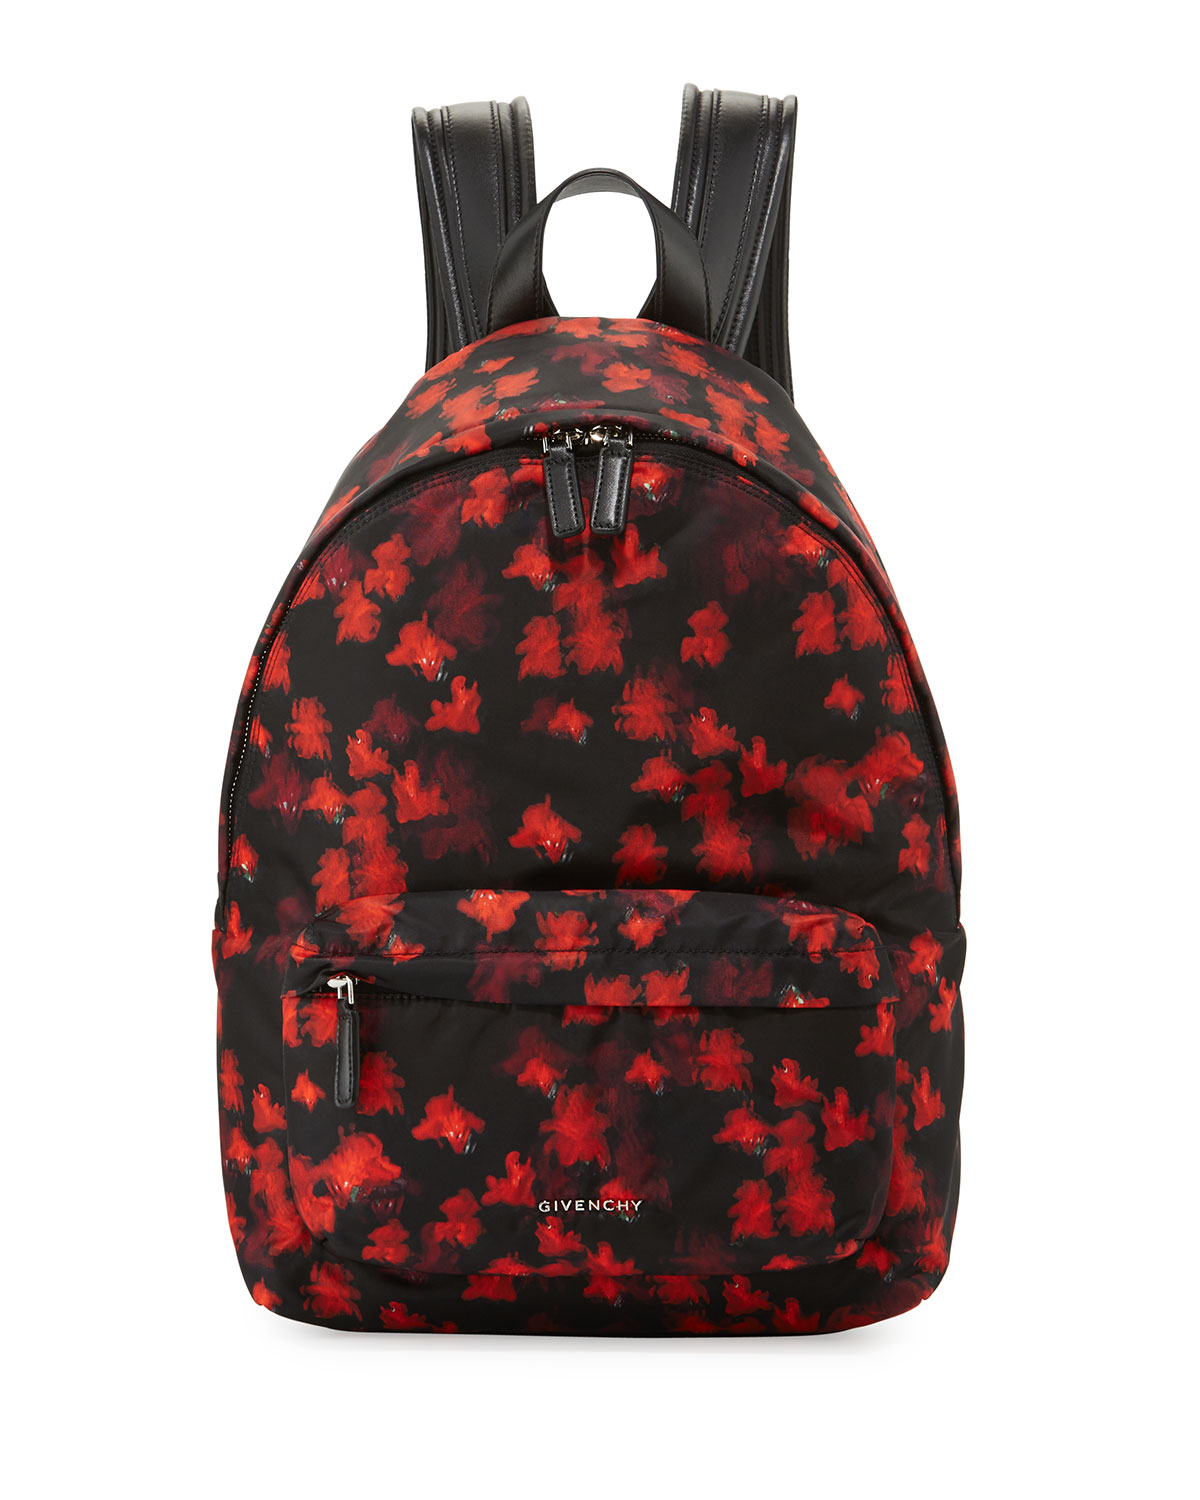 2c3d4f7e6d Givenchy Small Floral-Print Nylon Backpack